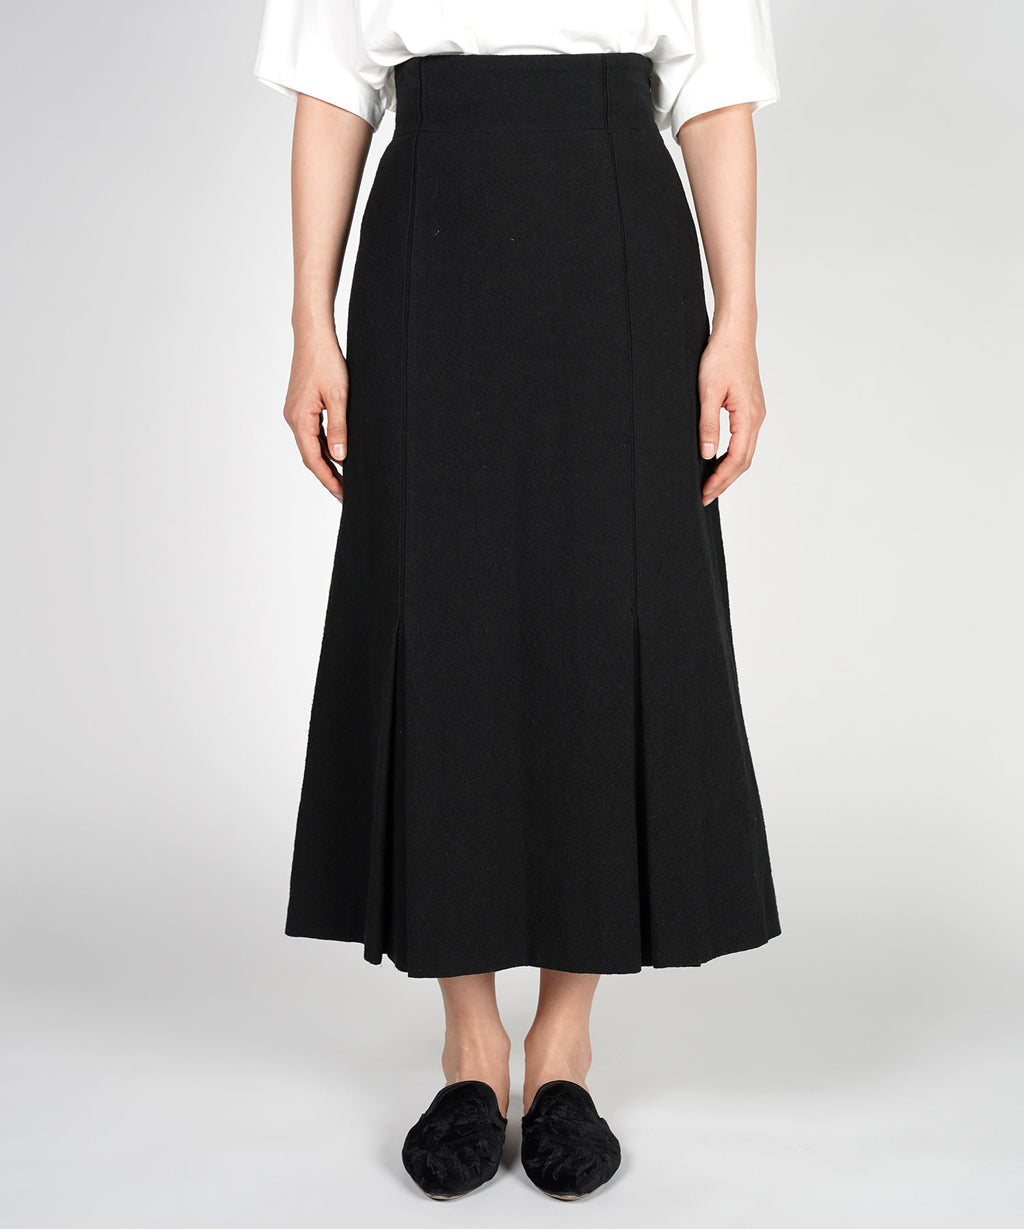 Droë inverted tuck skirt